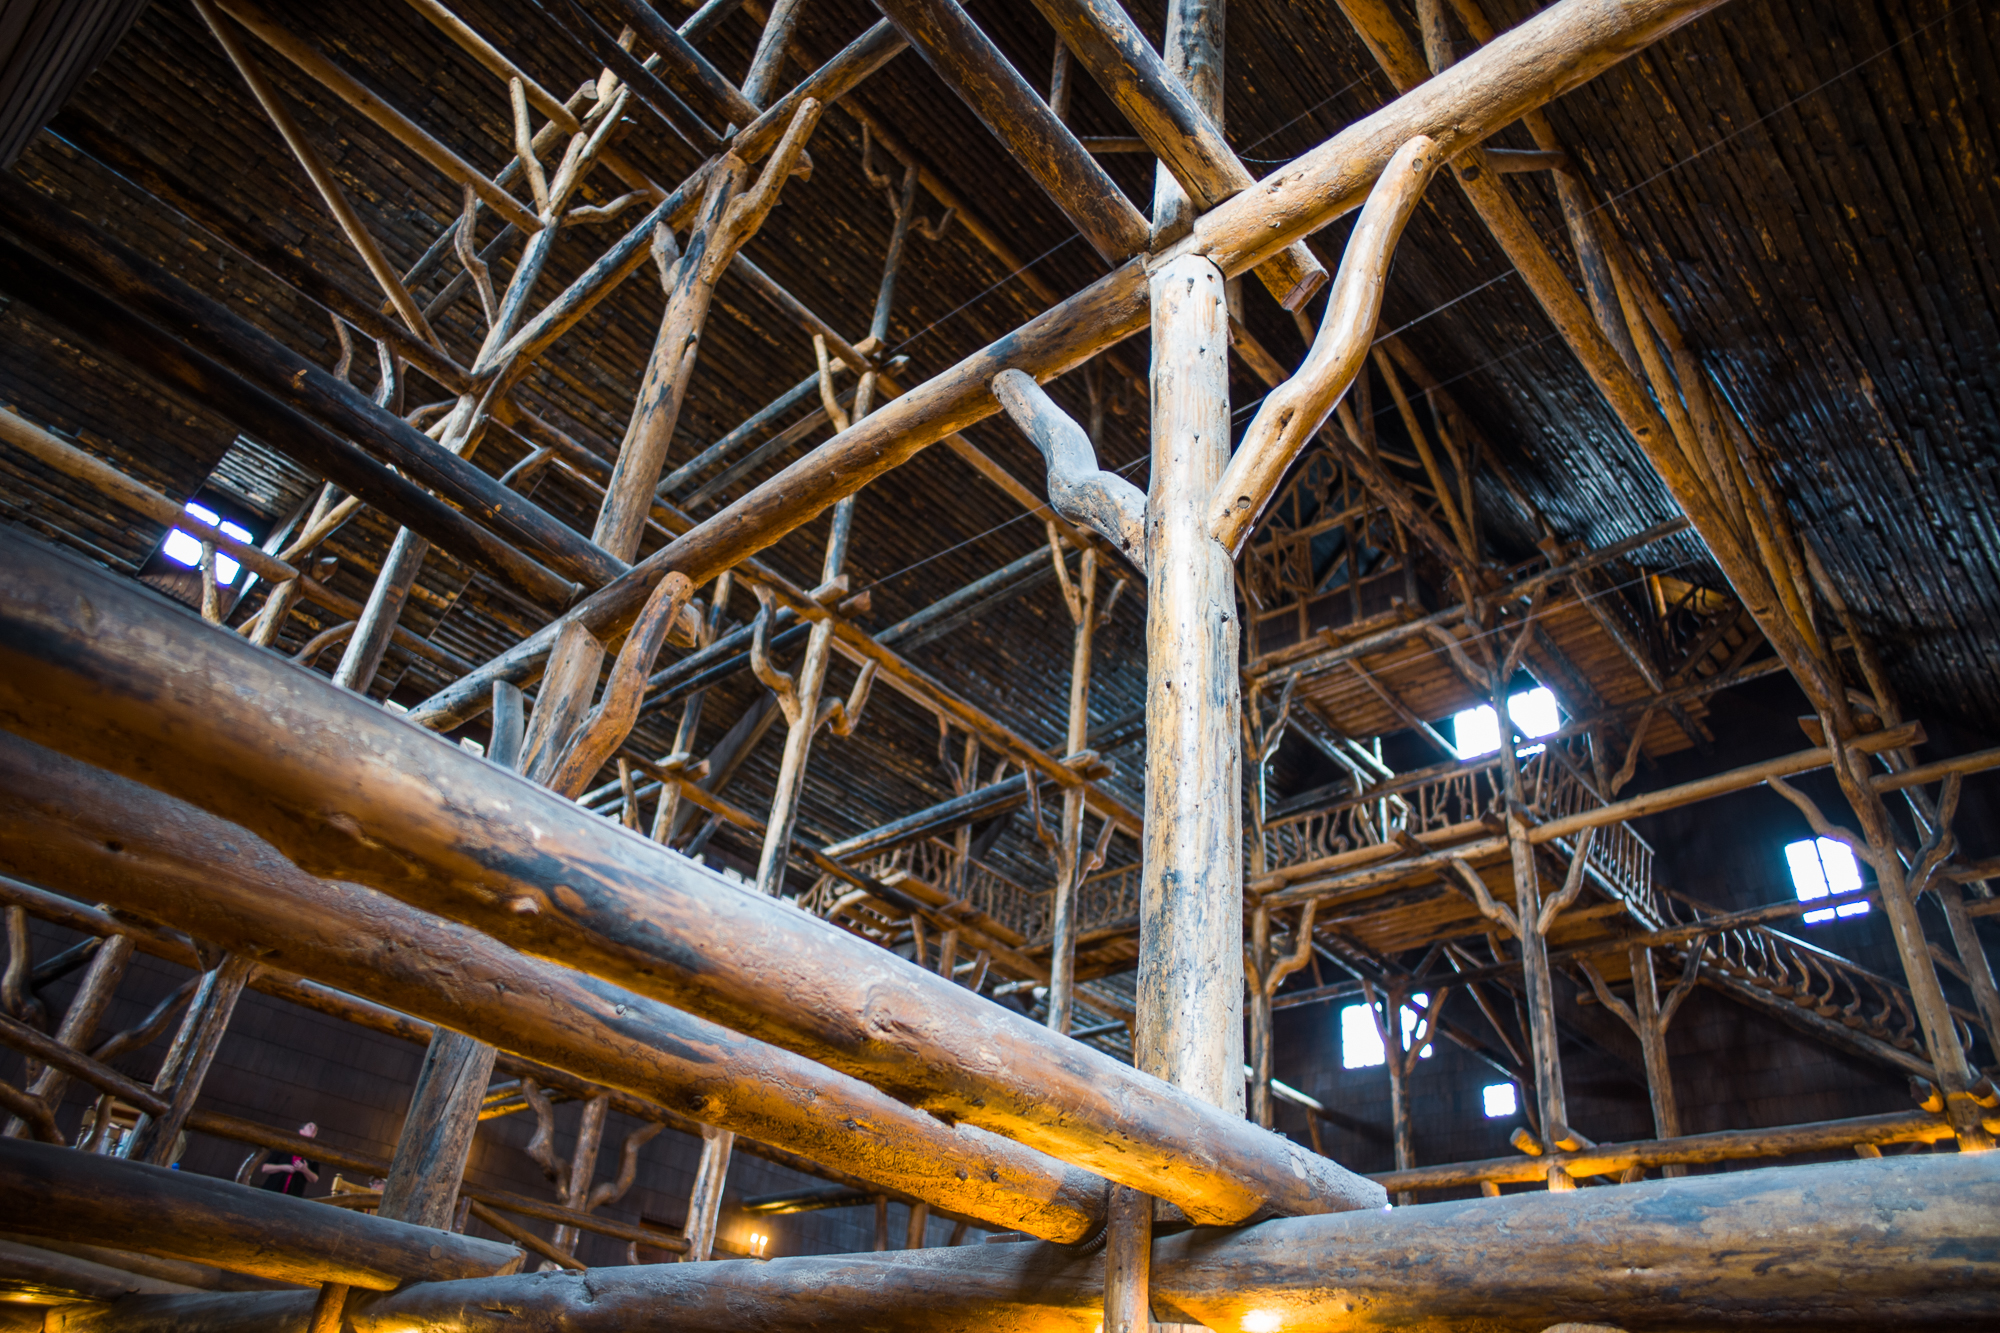 The lodgepole trestles built by the craftsmen